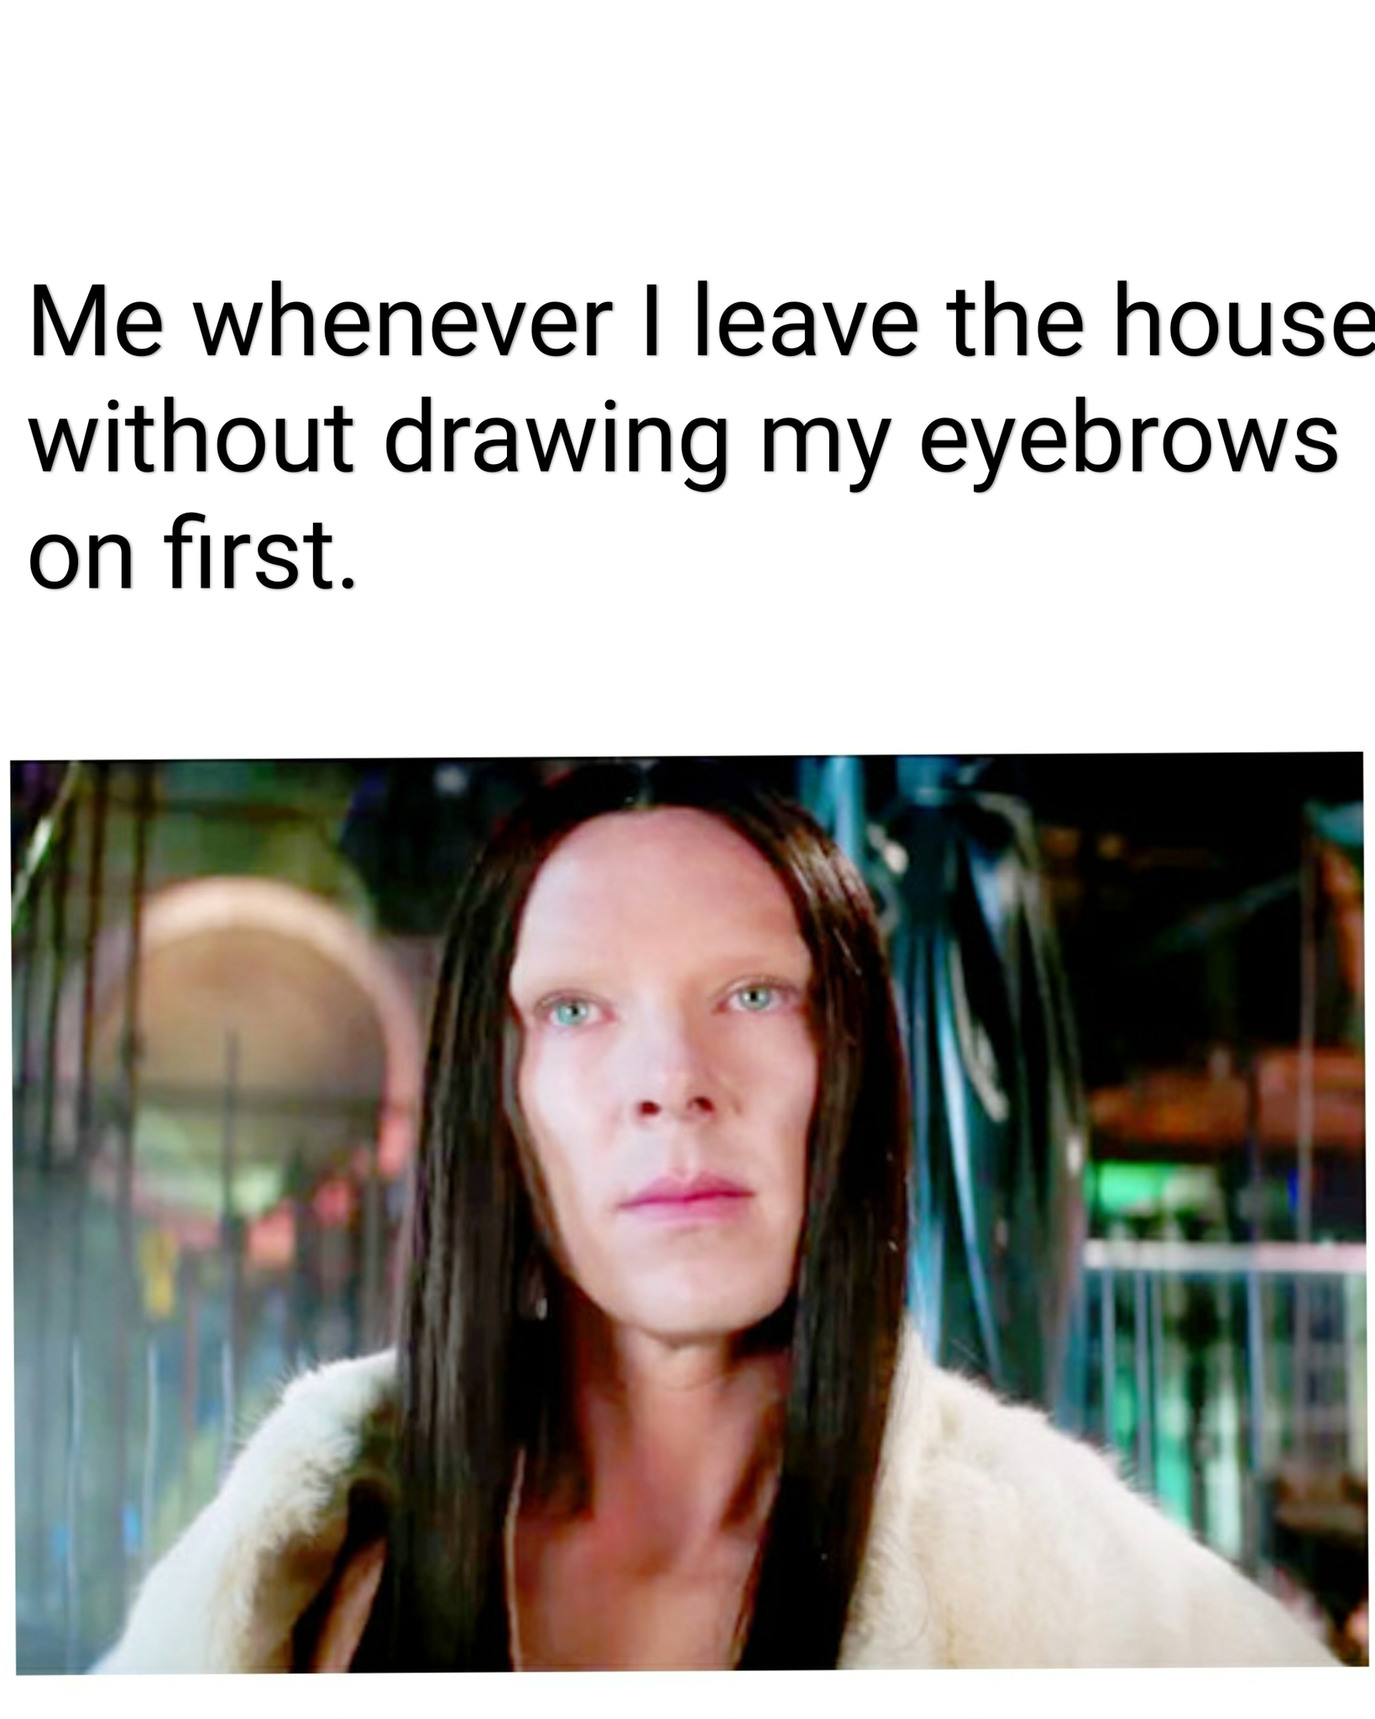 Me leaving the house without eyebrows - meme